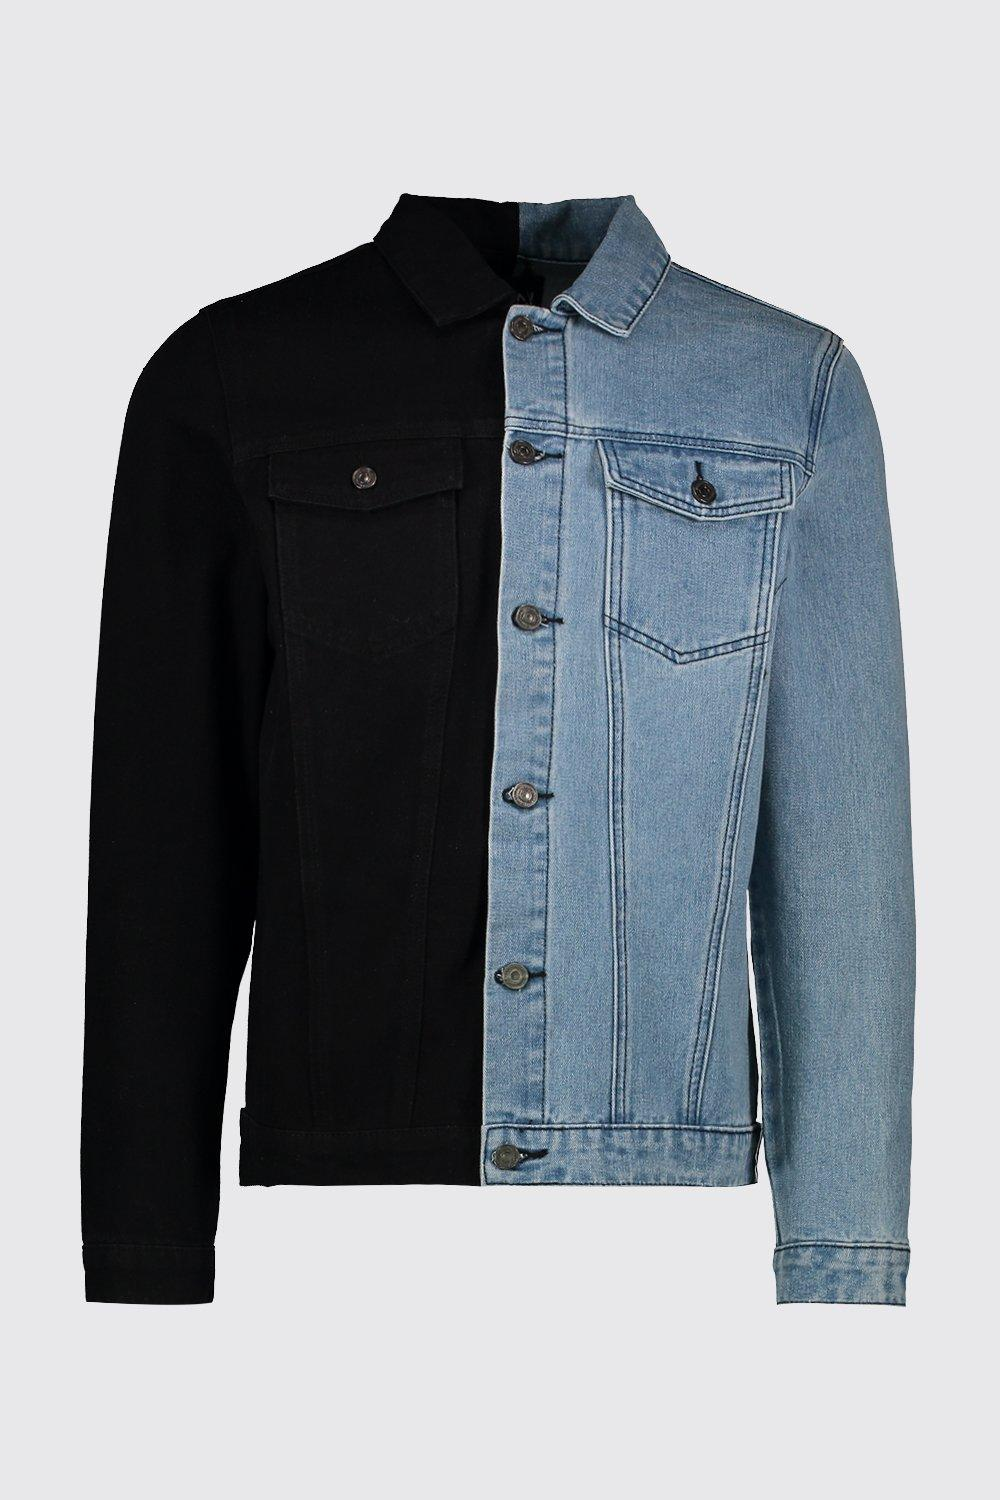 2020 Men Custom Black Denim Jacket With Contrast Detaild And Outerwear Jeans Coat